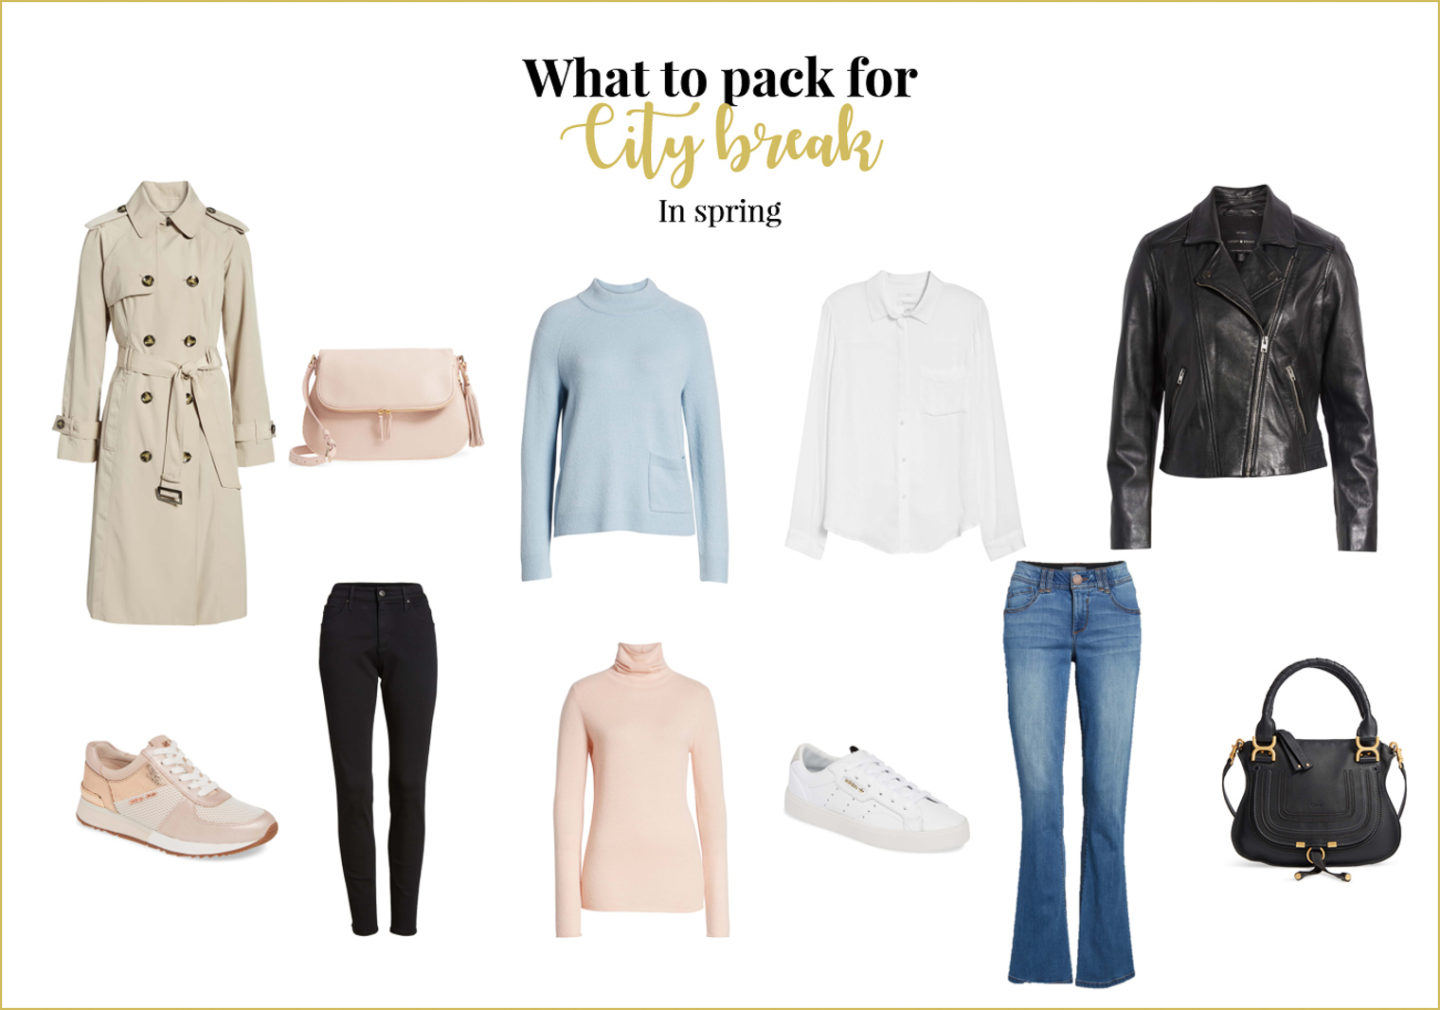 Planning a long weekend? Here is your city break packing list for spring.